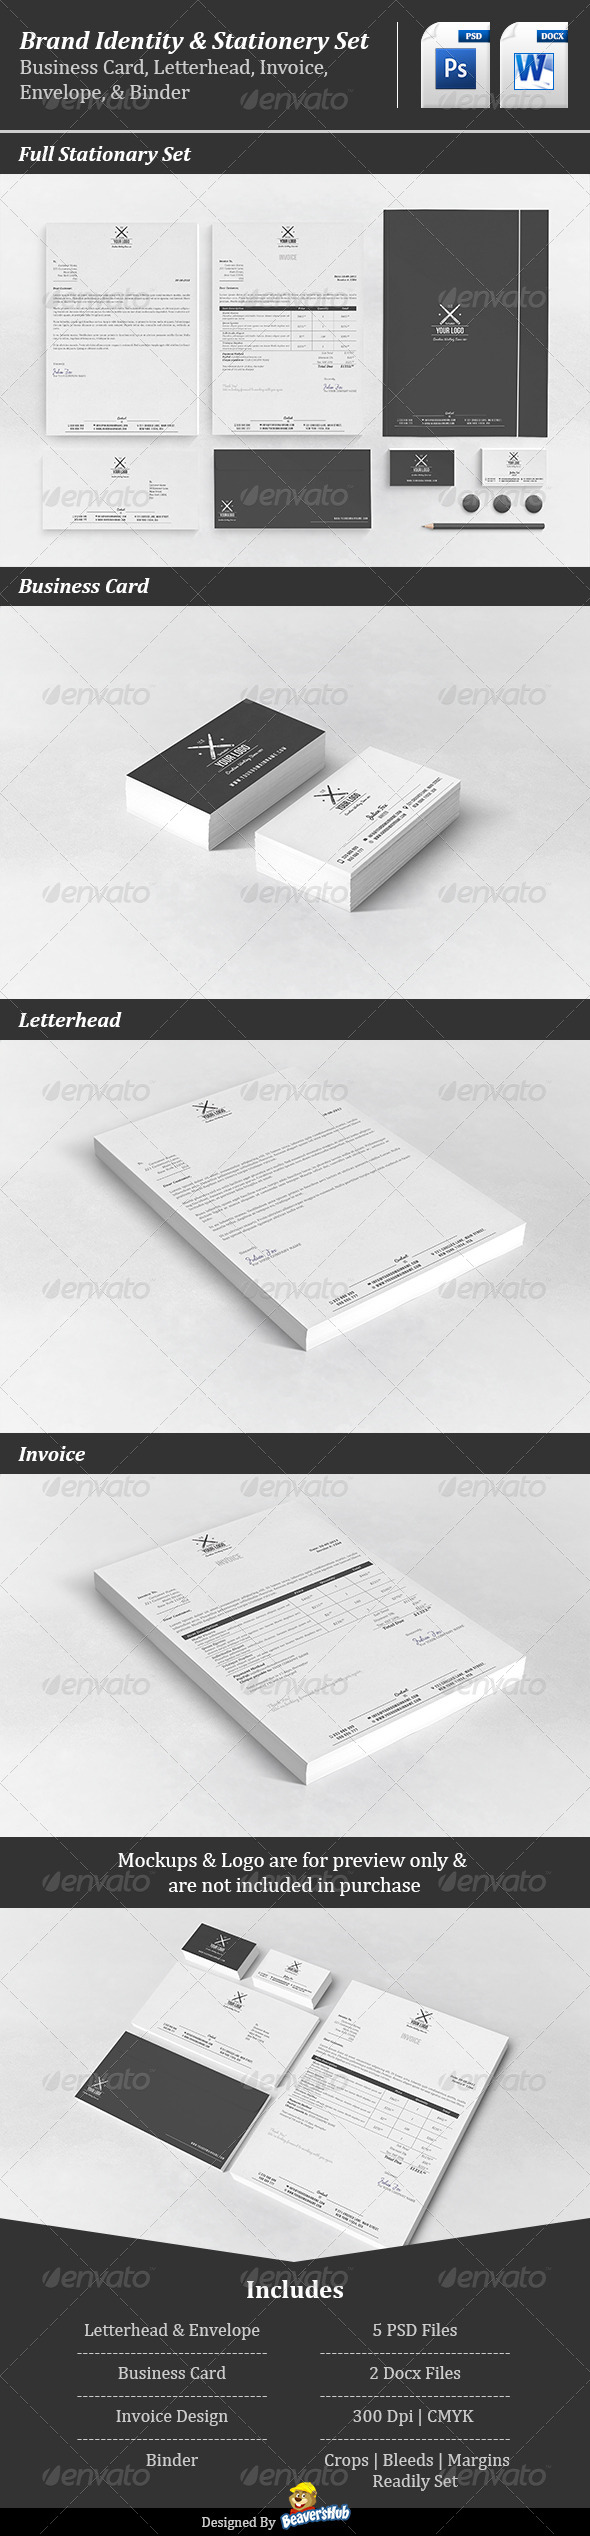 Corporate Stationery Set - Stationery Print Templates